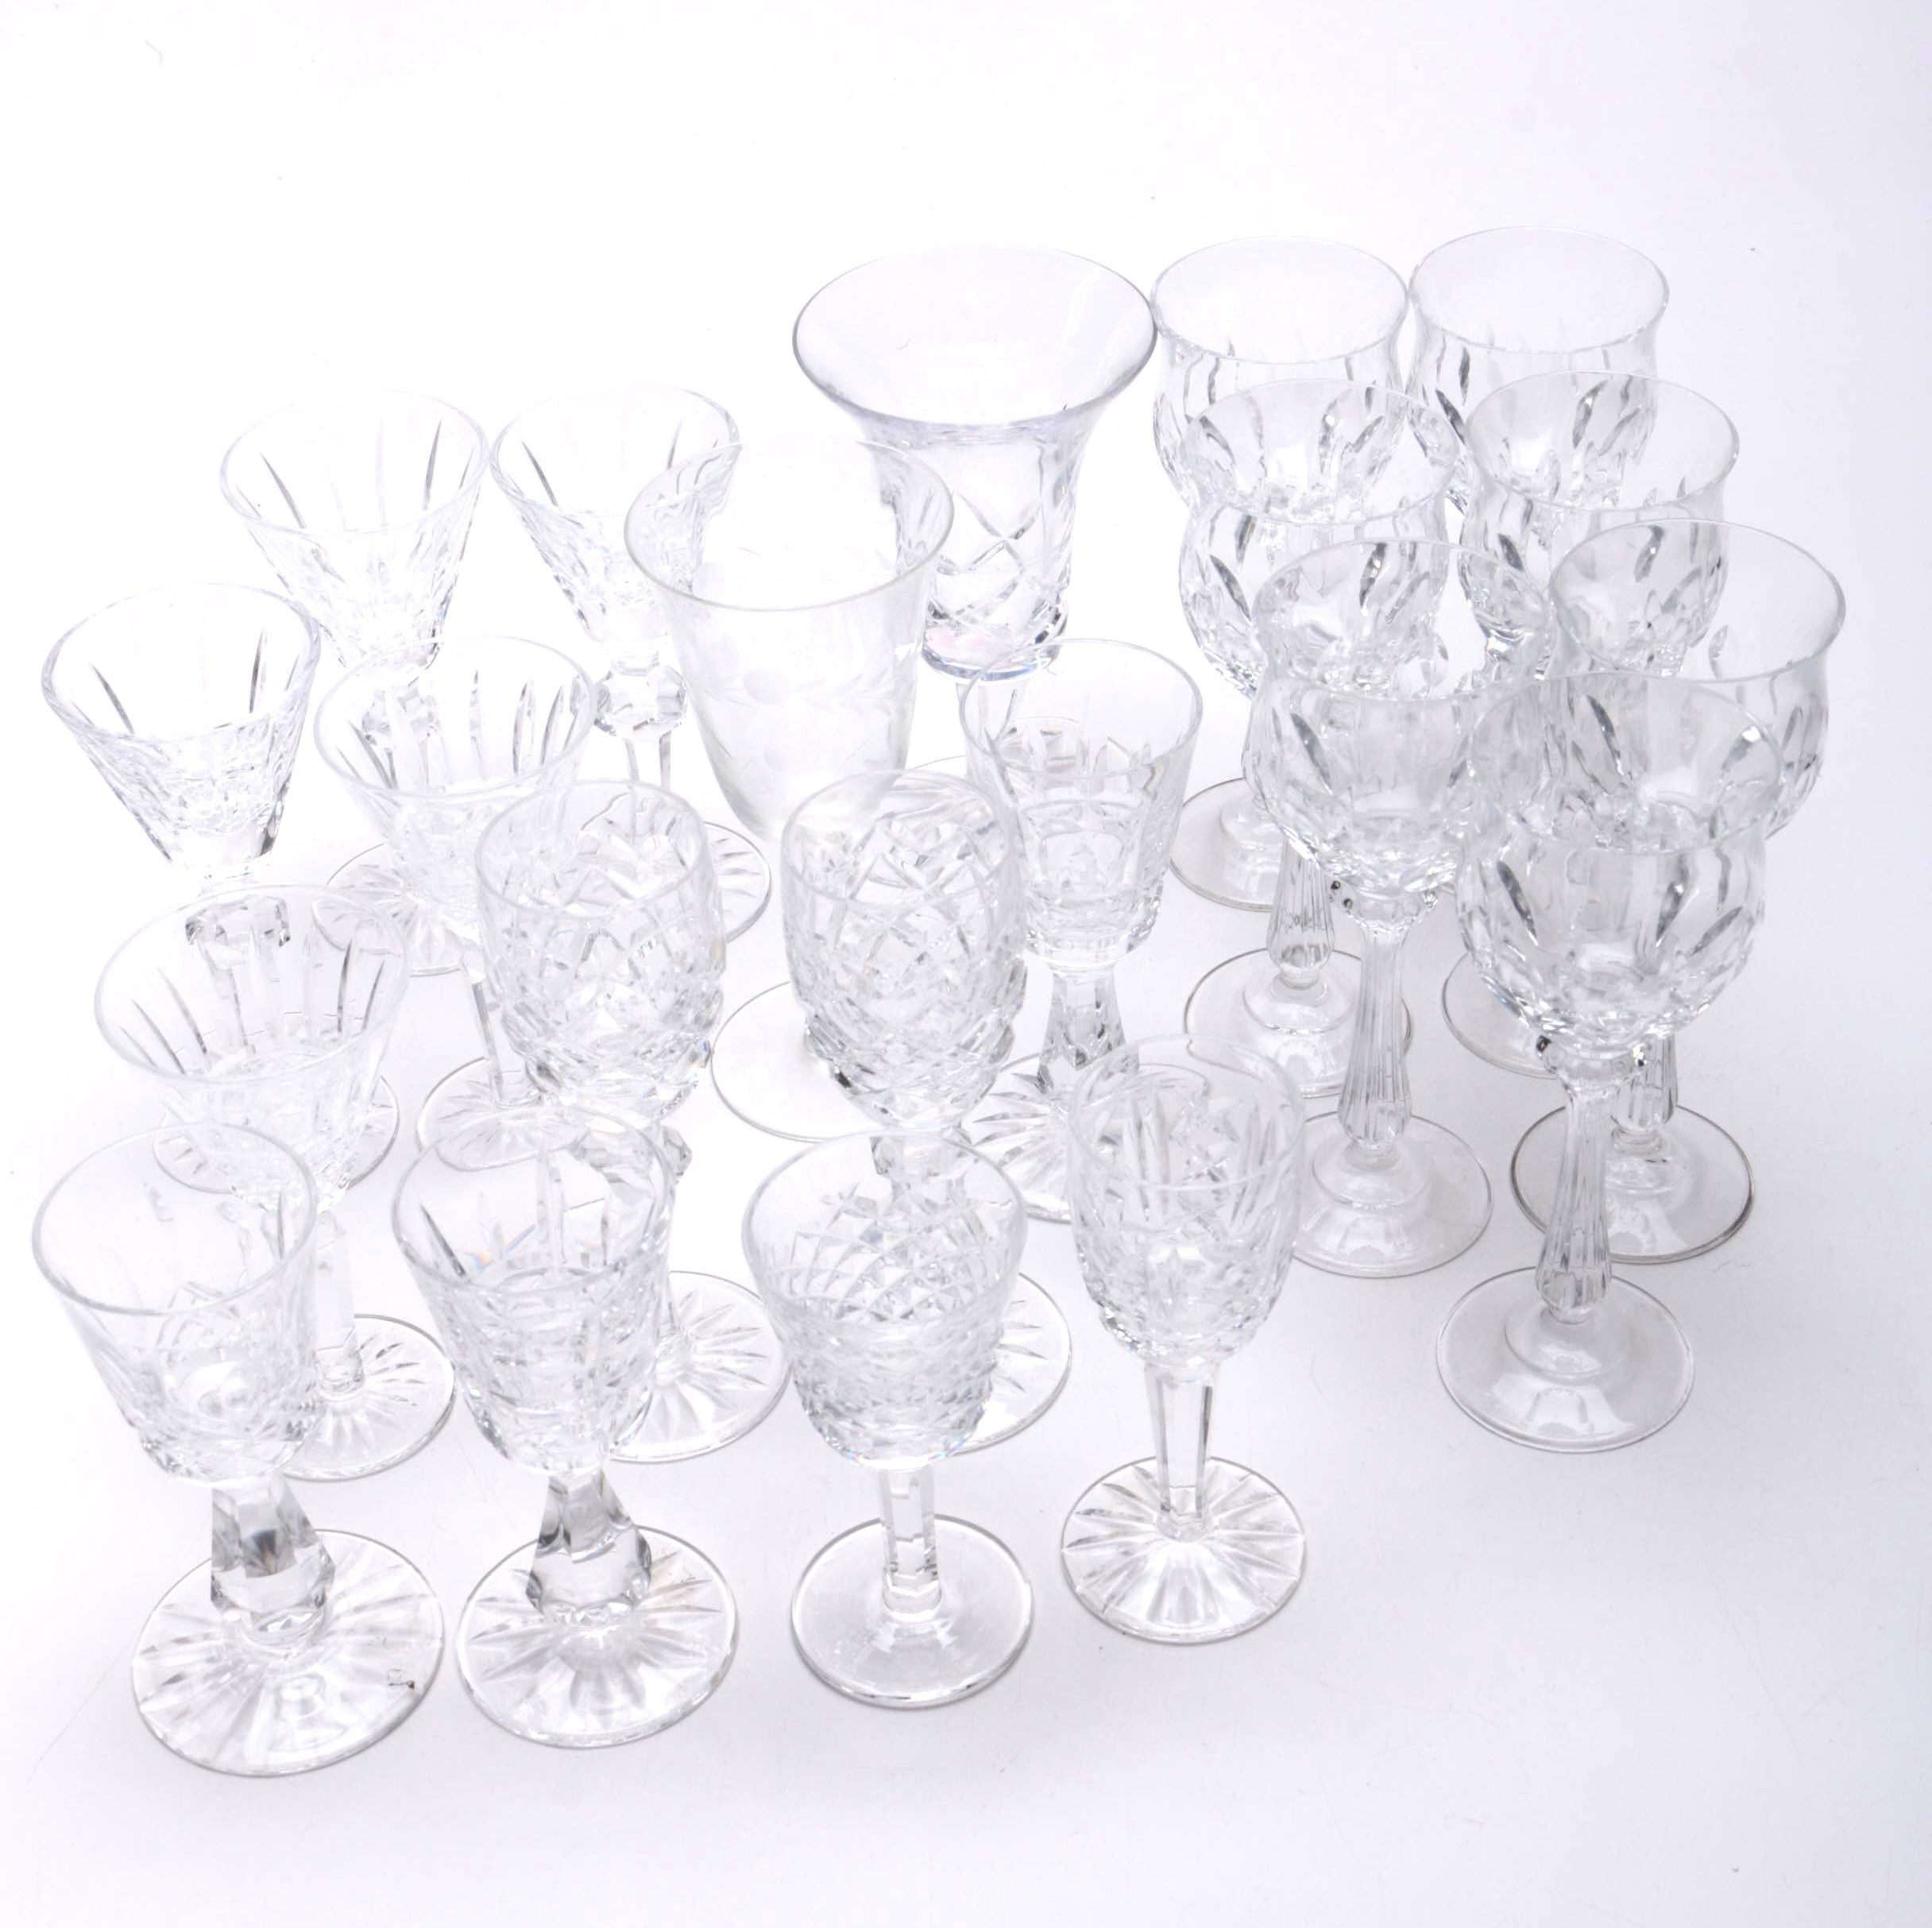 Collection of Sherry Glasses